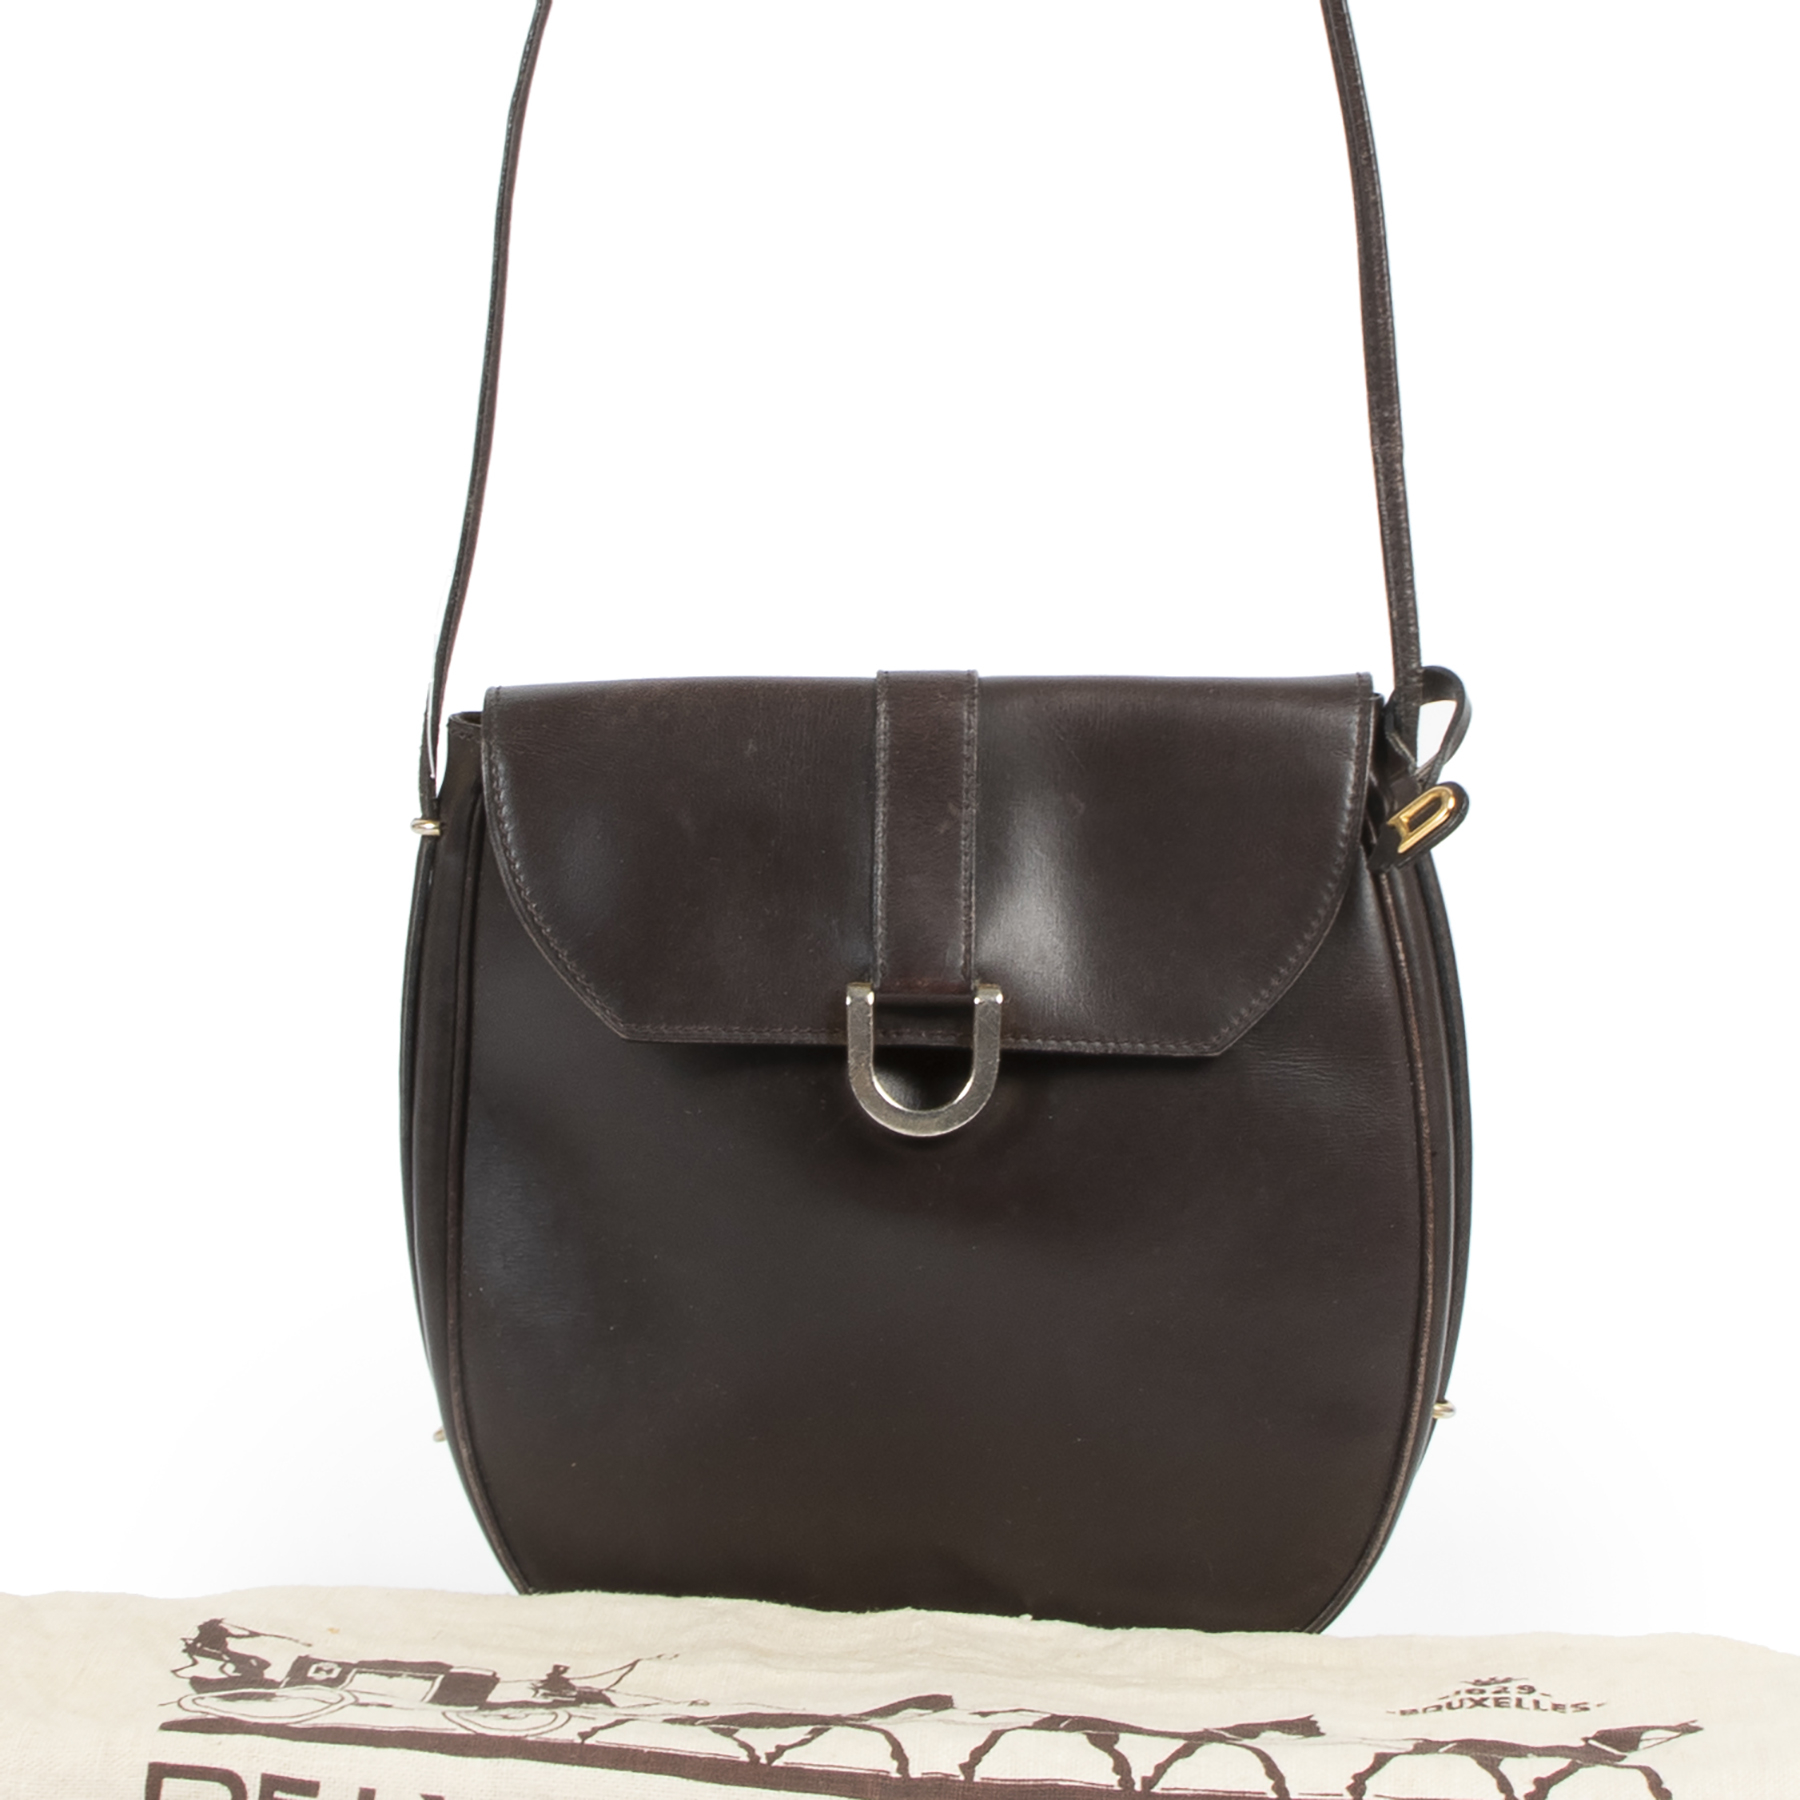 are you looking for an authentic designer Delvaux Vintage Brown Crossbody Bag?